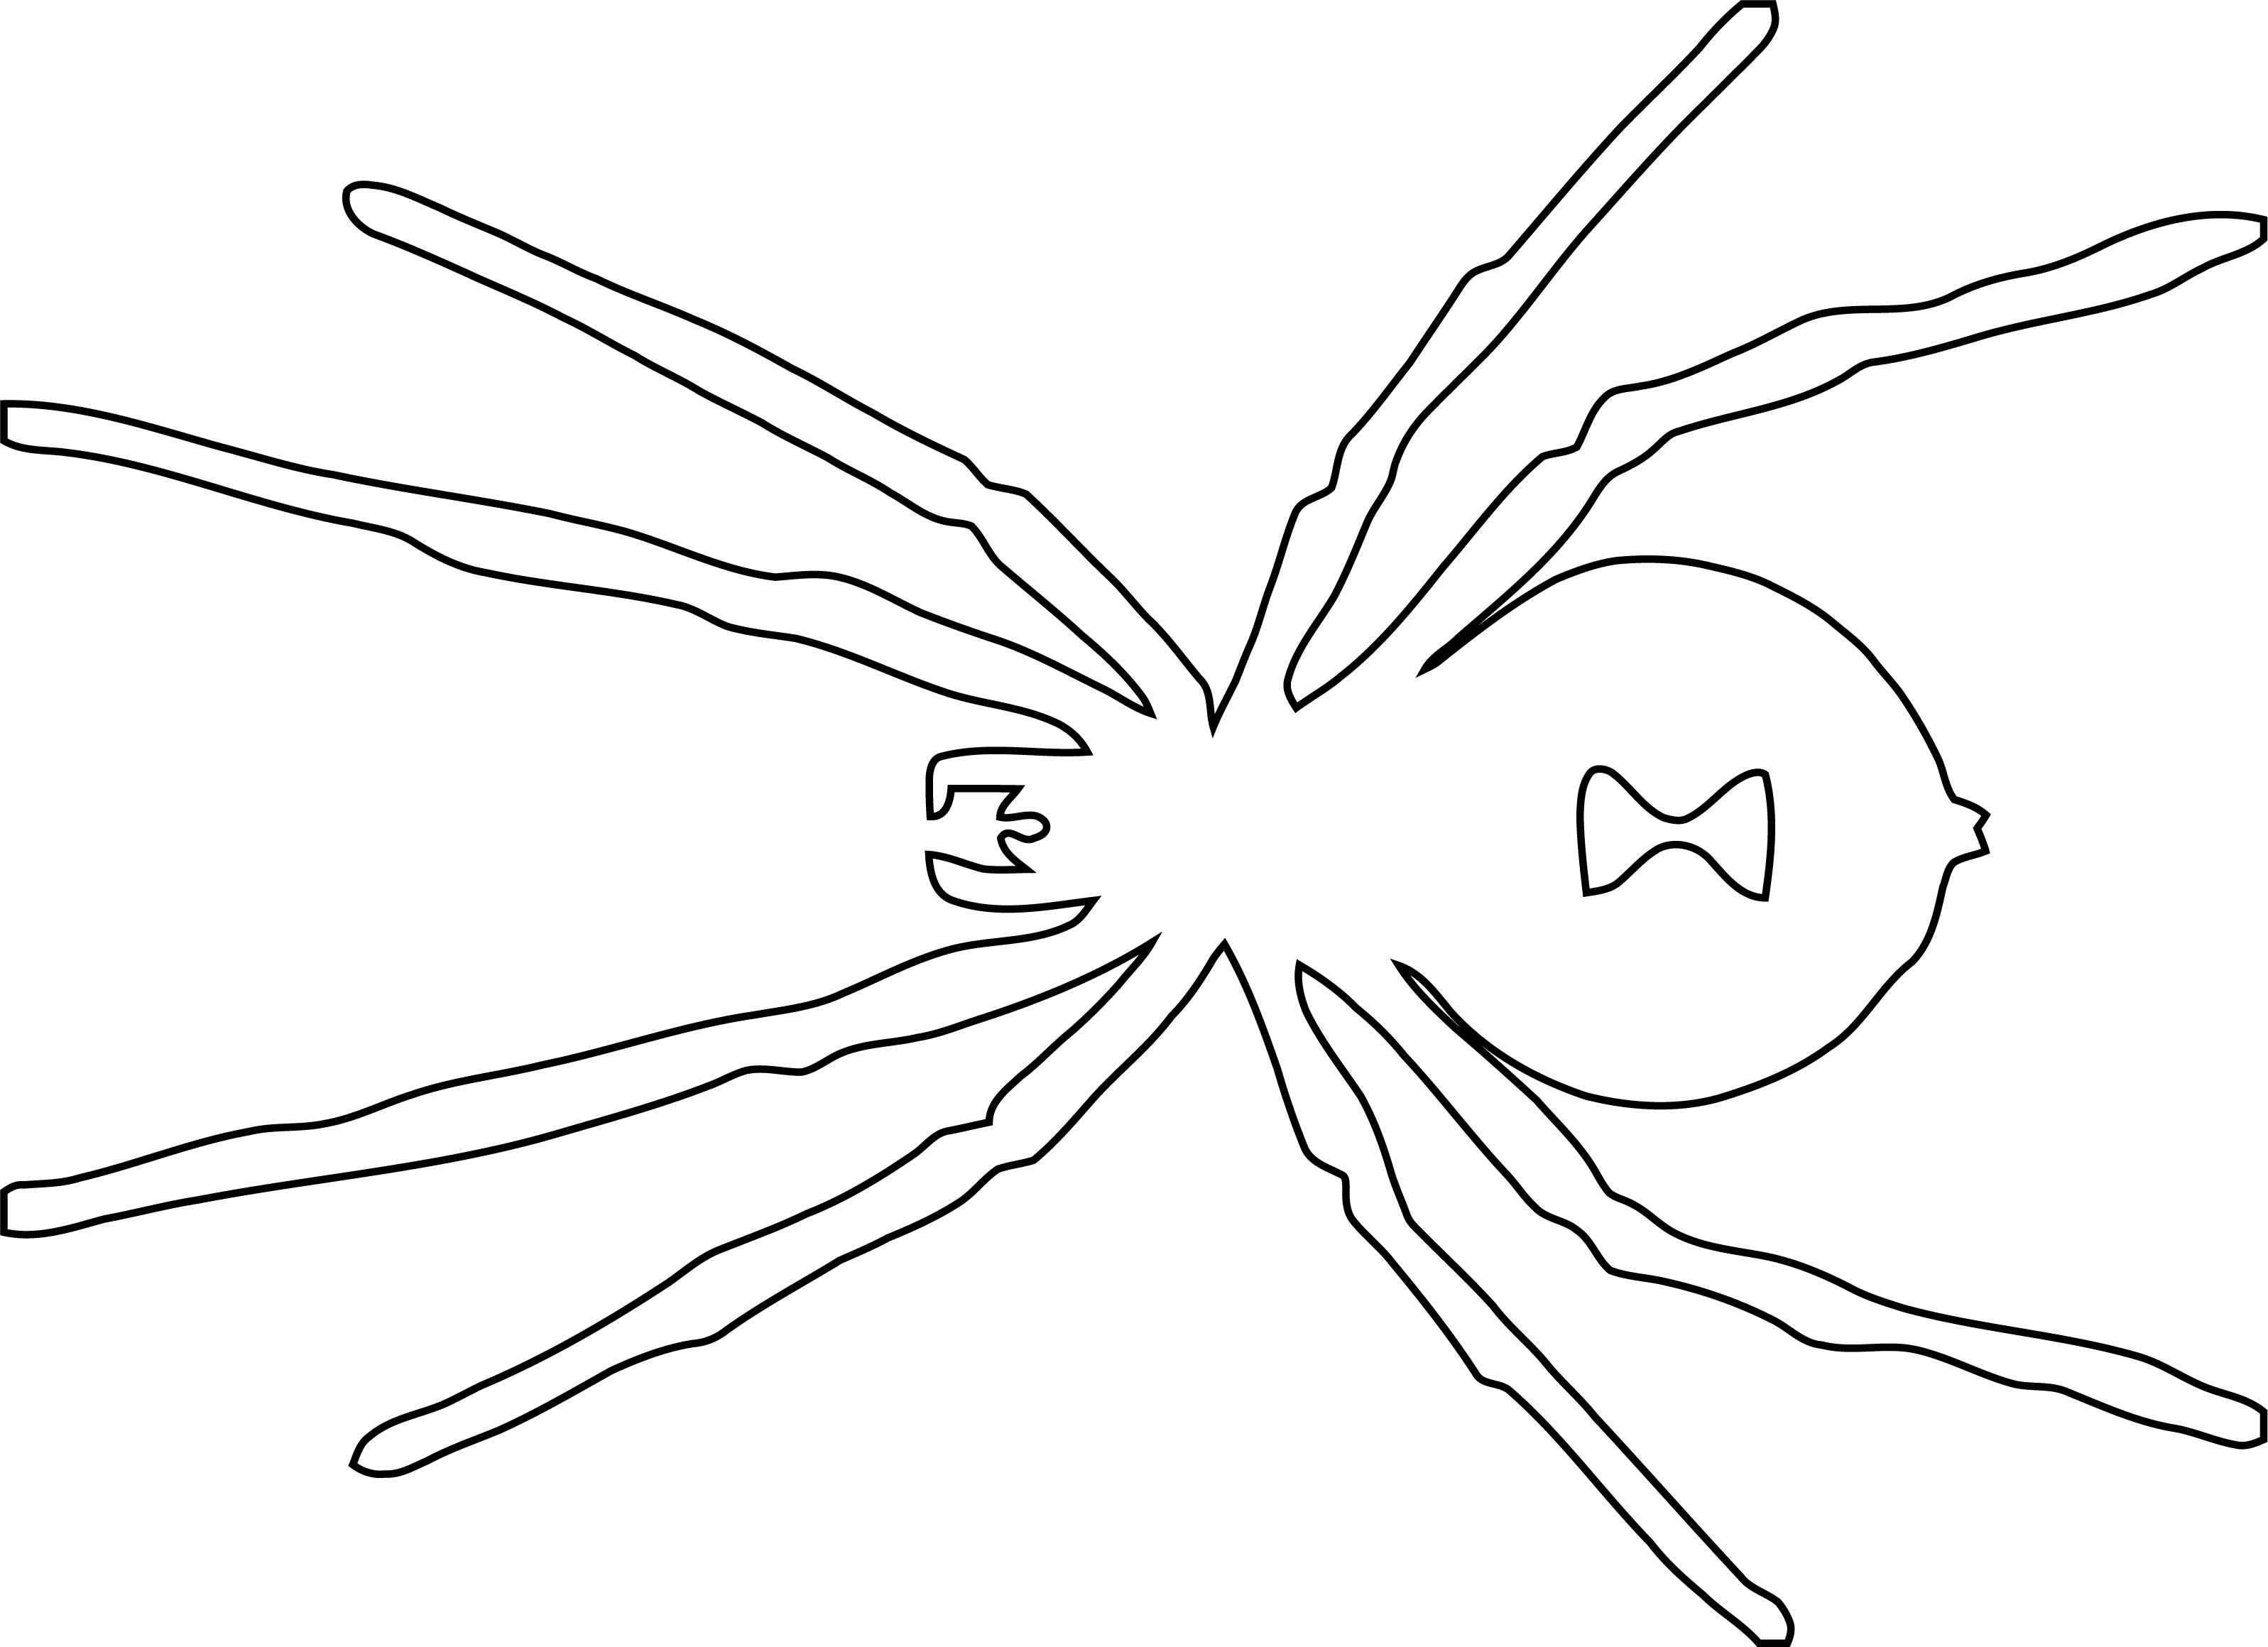 Halloween Spider Outline Coloring Page